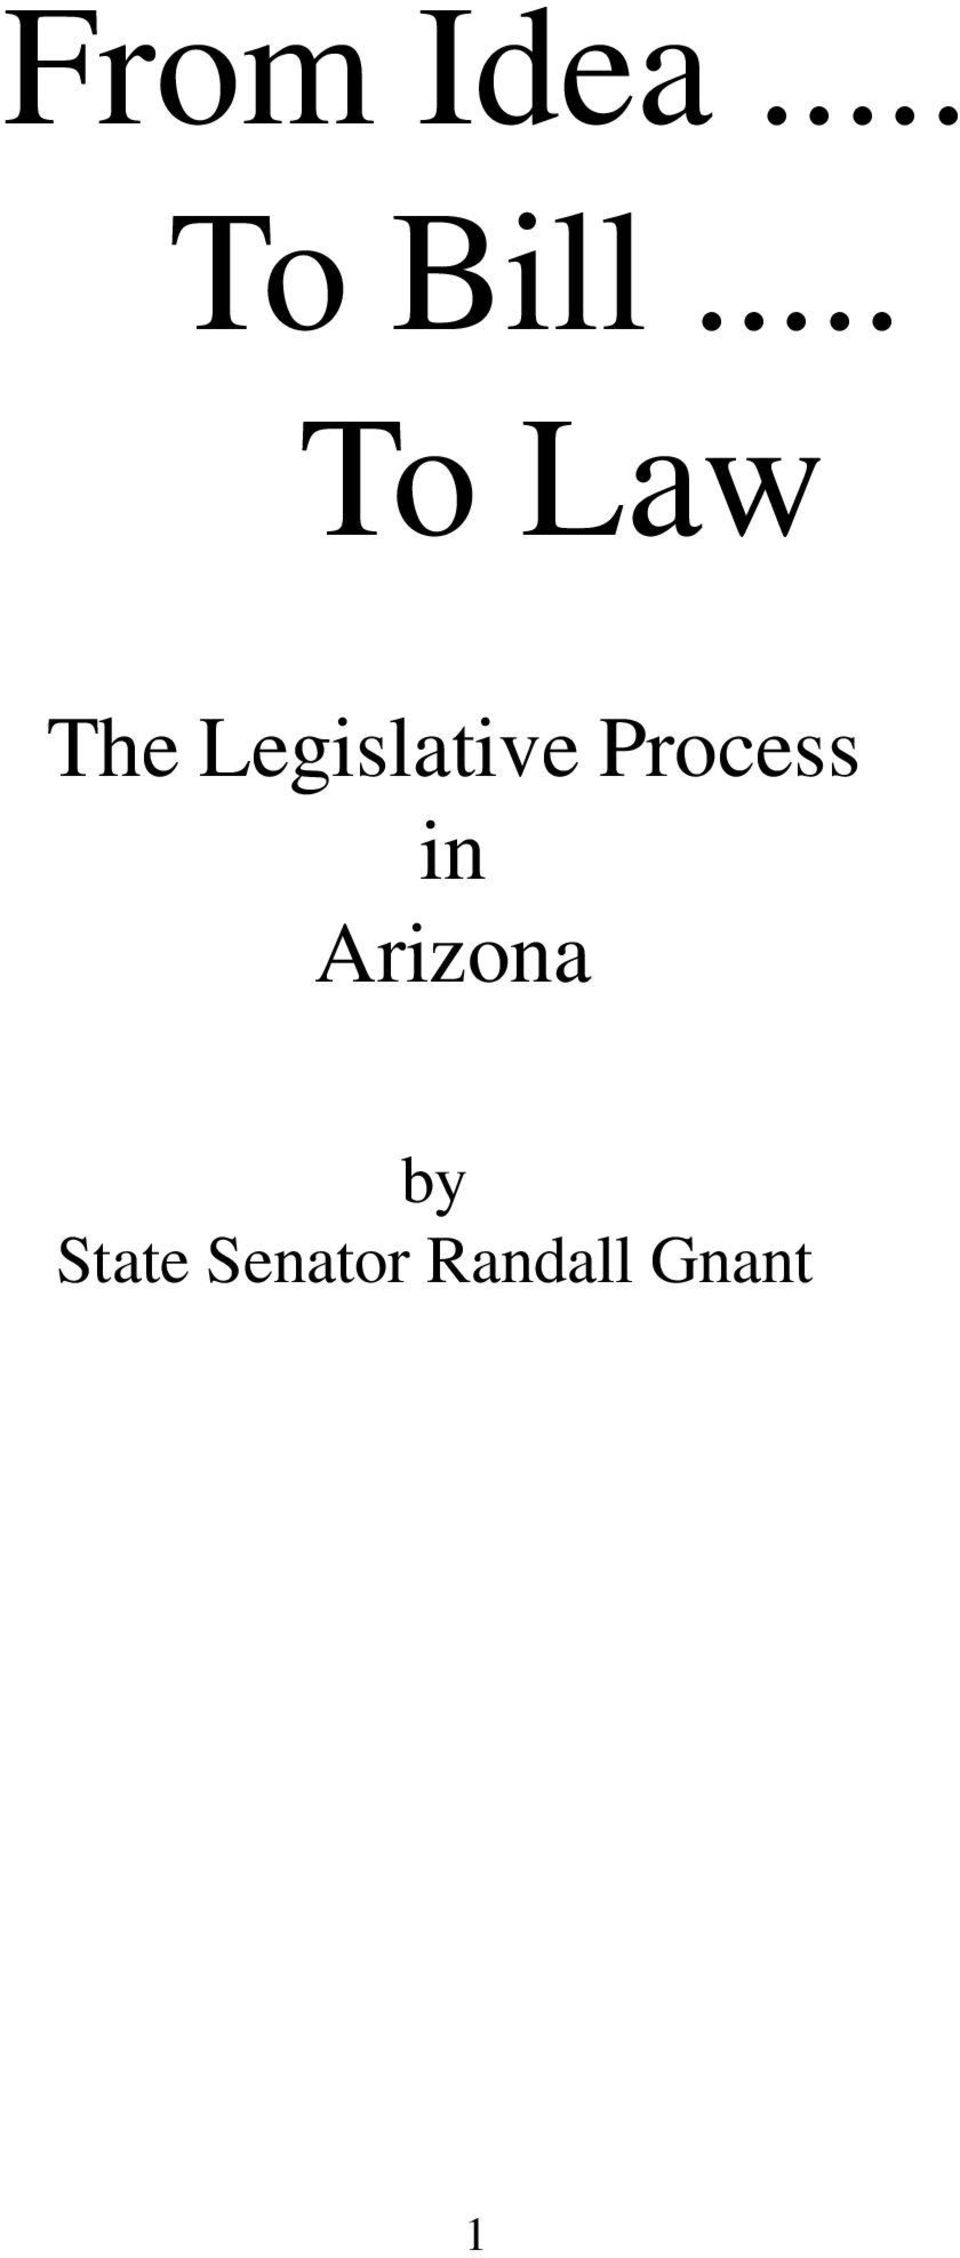 Legislative Process in